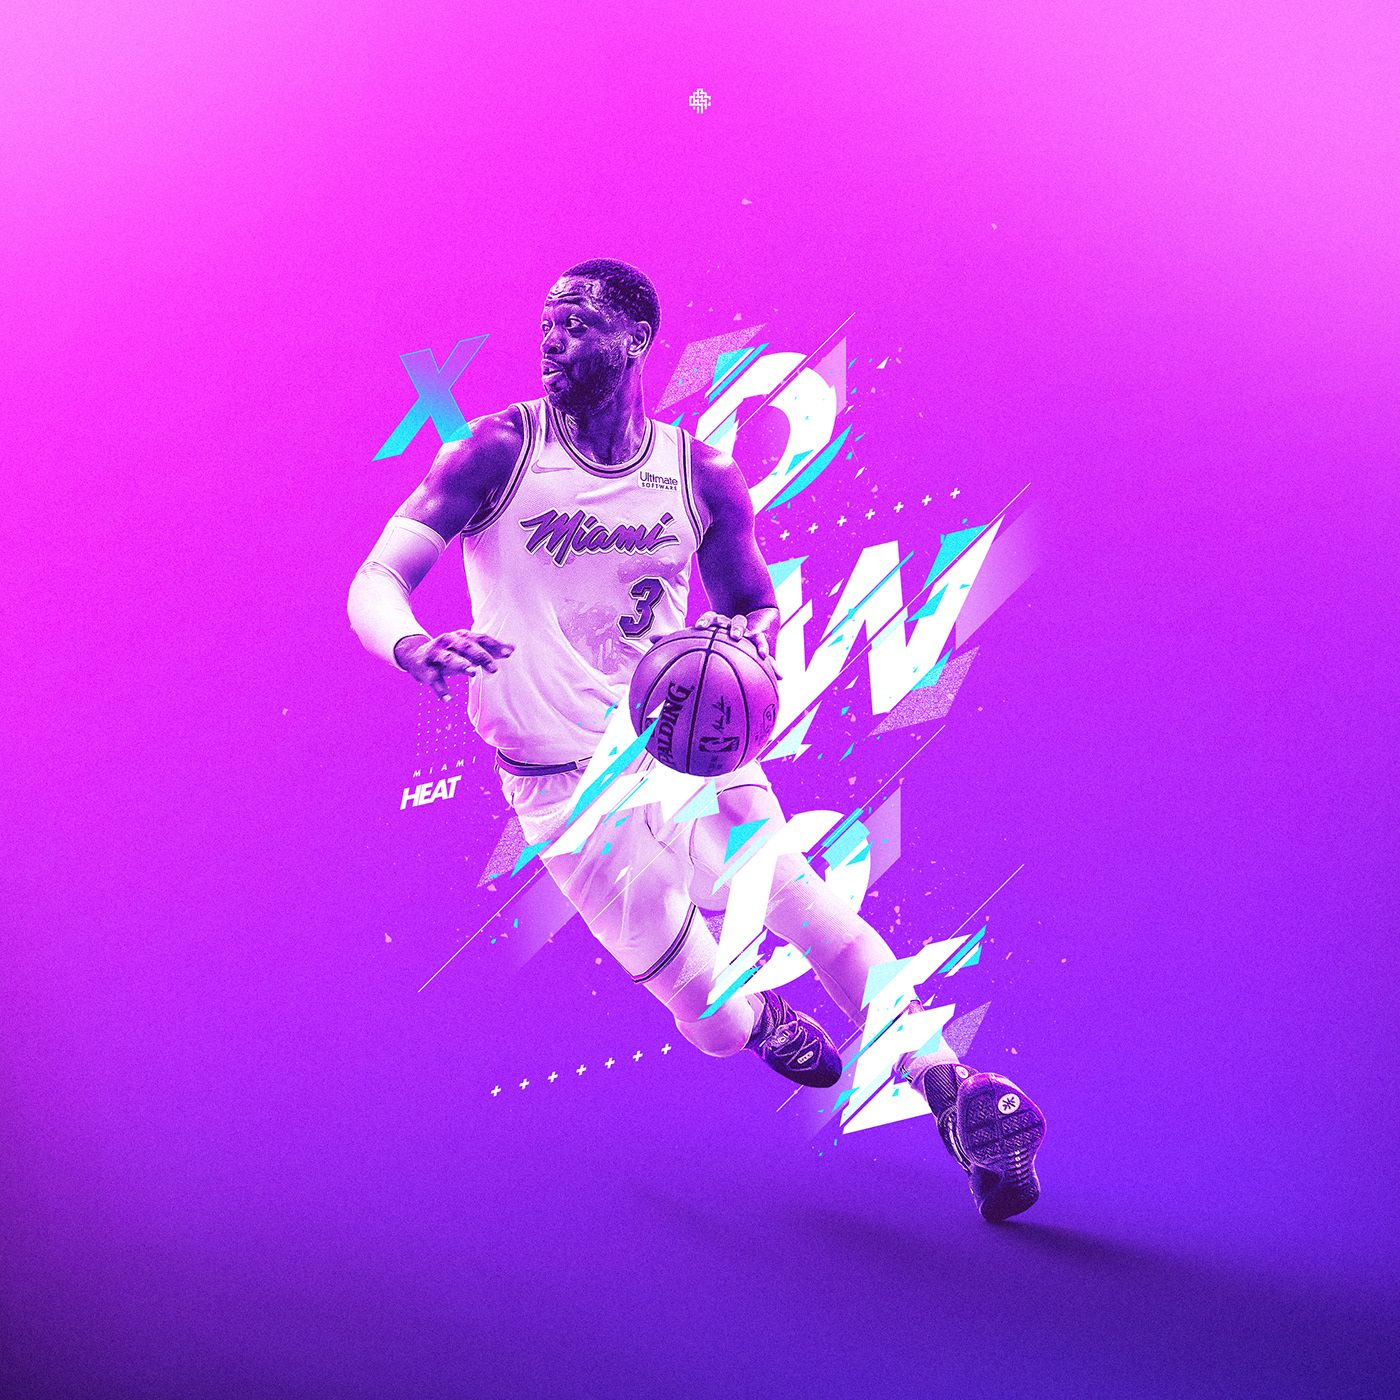 Personal Projectdwyane Wade 3 Of Miami Heat Retro Style Nba Wallpapers Dwyane Wade Sports Graphic Design